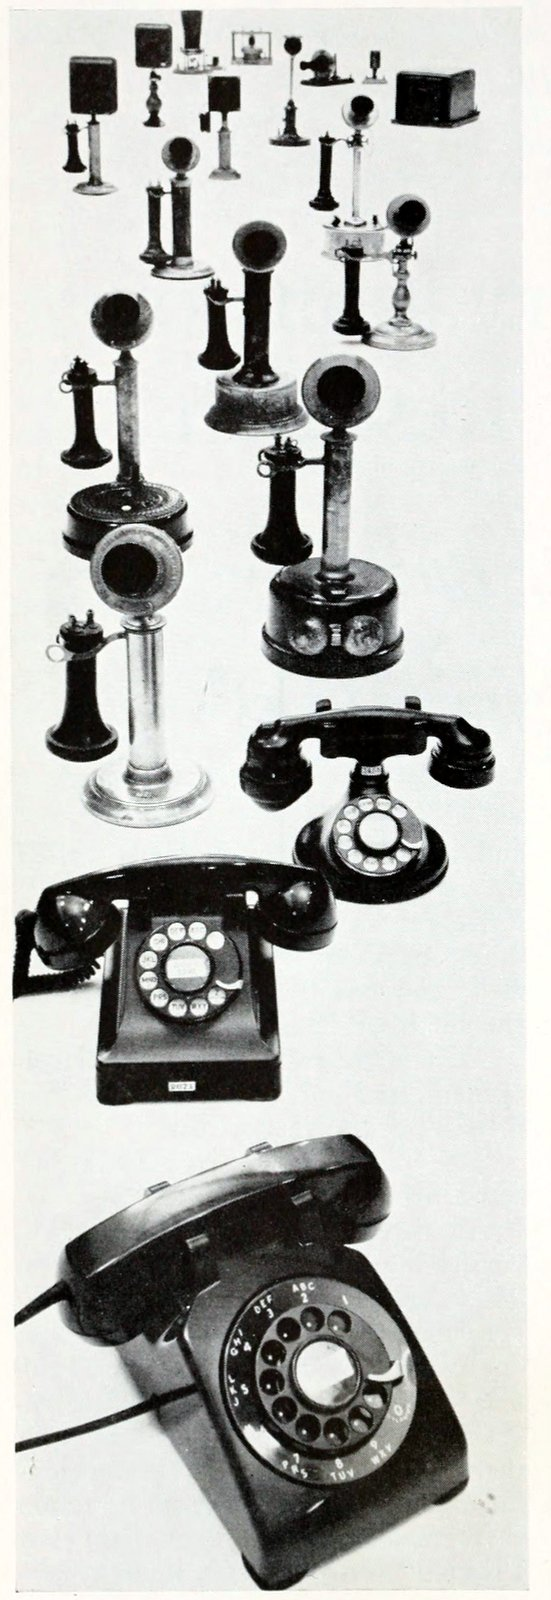 The history of the telephone - Early phone models (2)